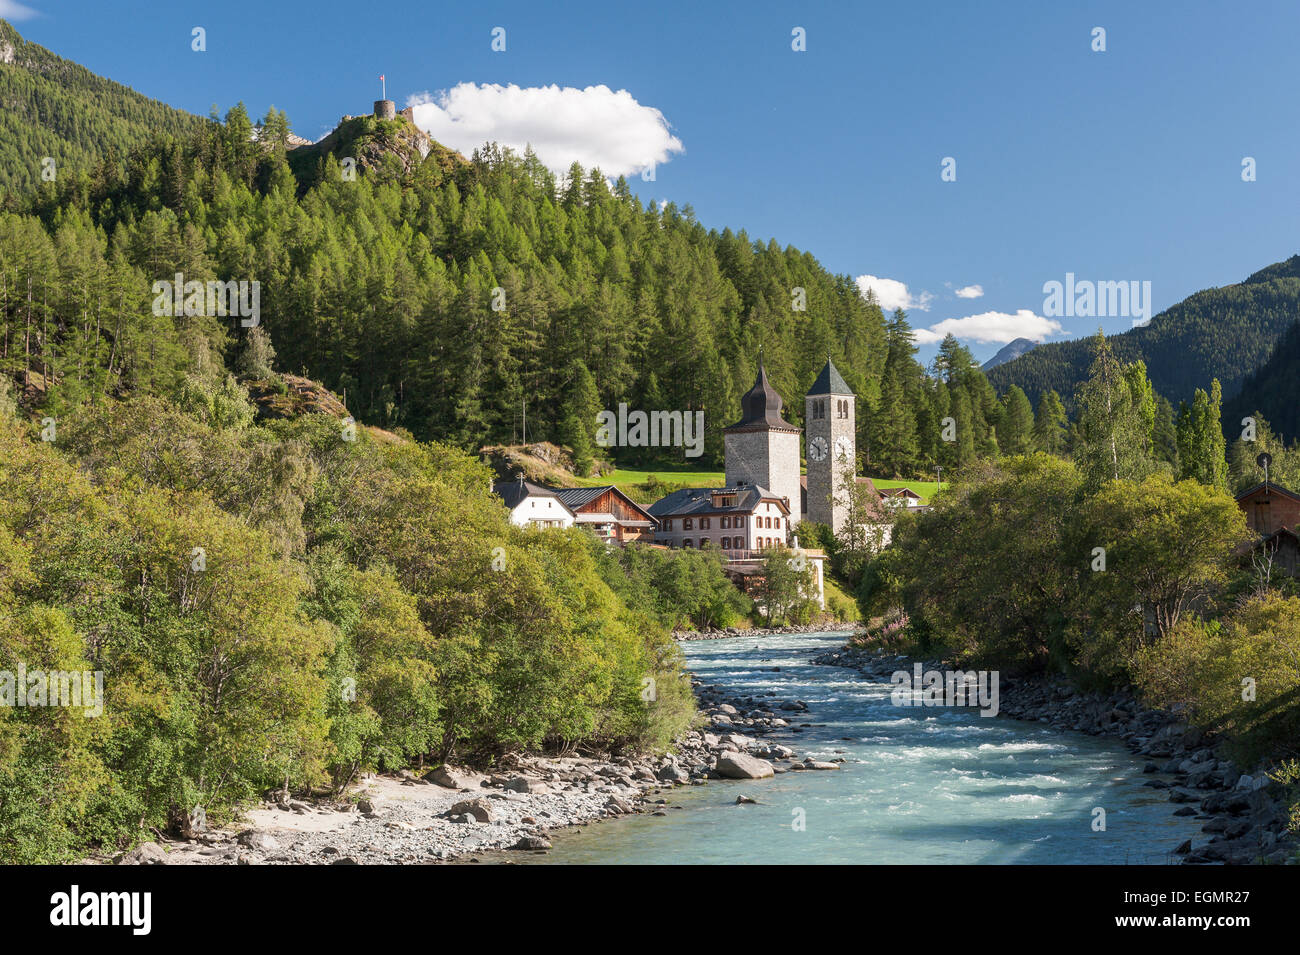 River Inn, medieval Plantaturm Tower with house and Reformed church, Susch, Zernez, Grisons, Switzerland - Stock Image